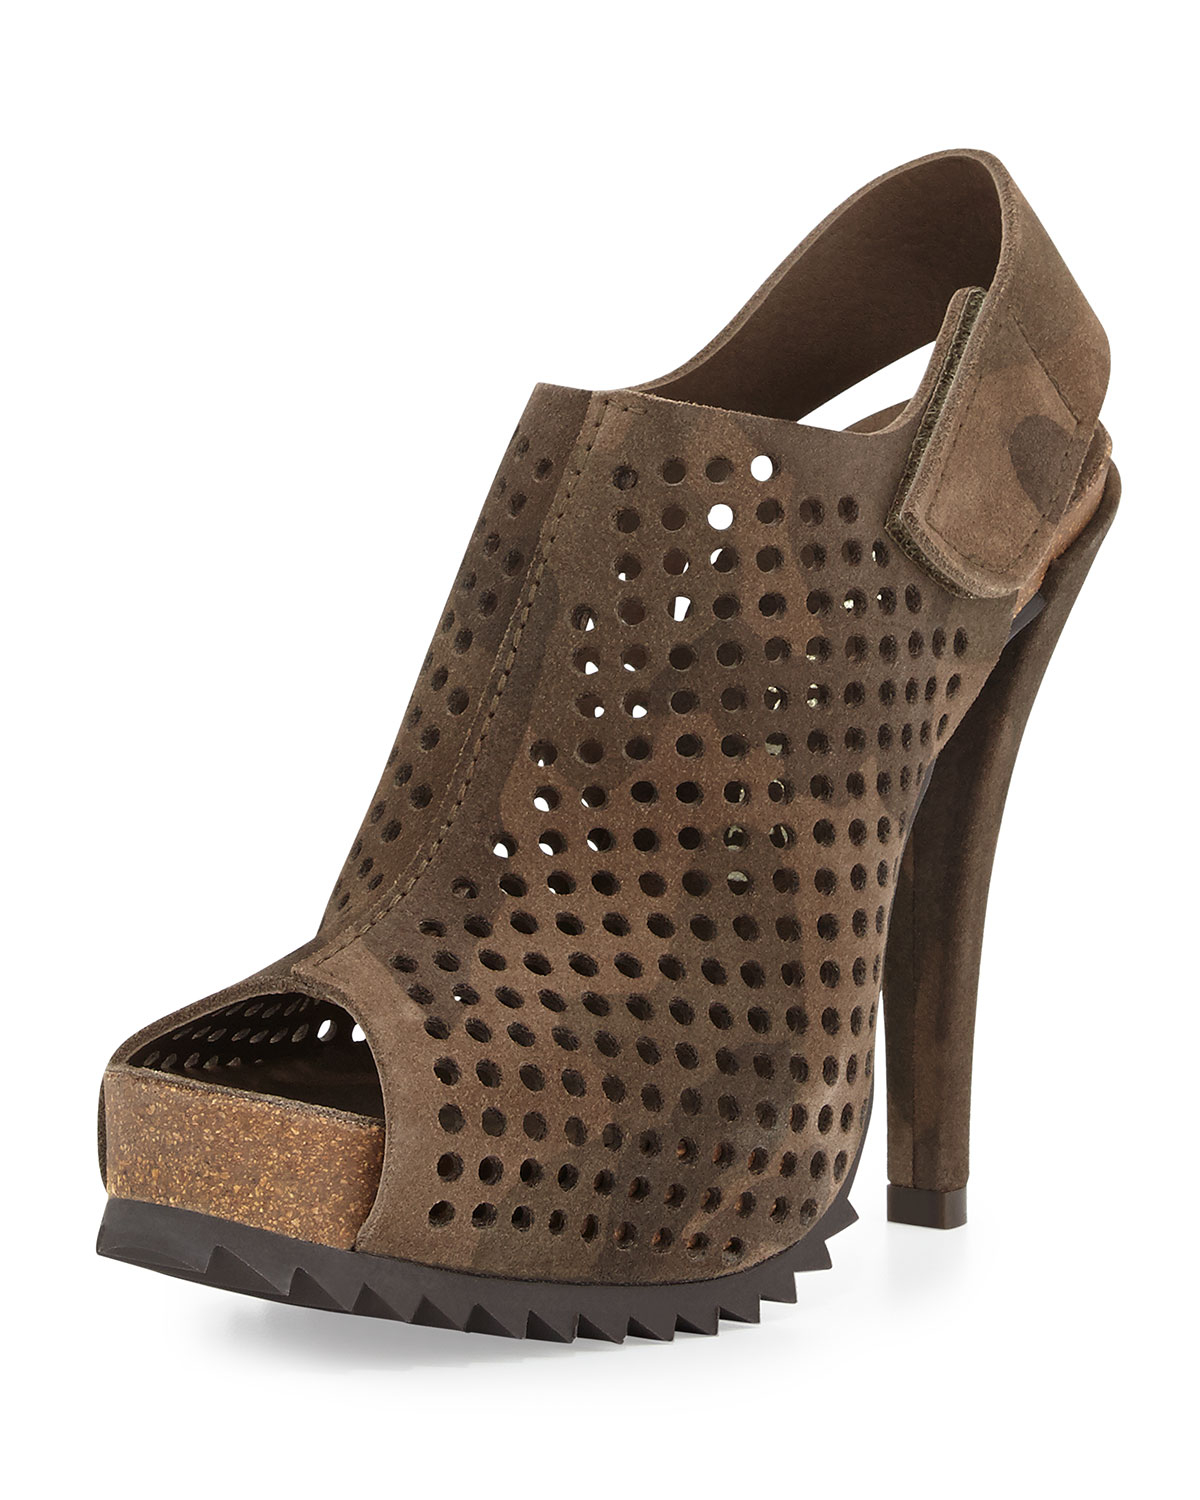 Pedro garcia Perforated Suede Slingback Bootie in Brown